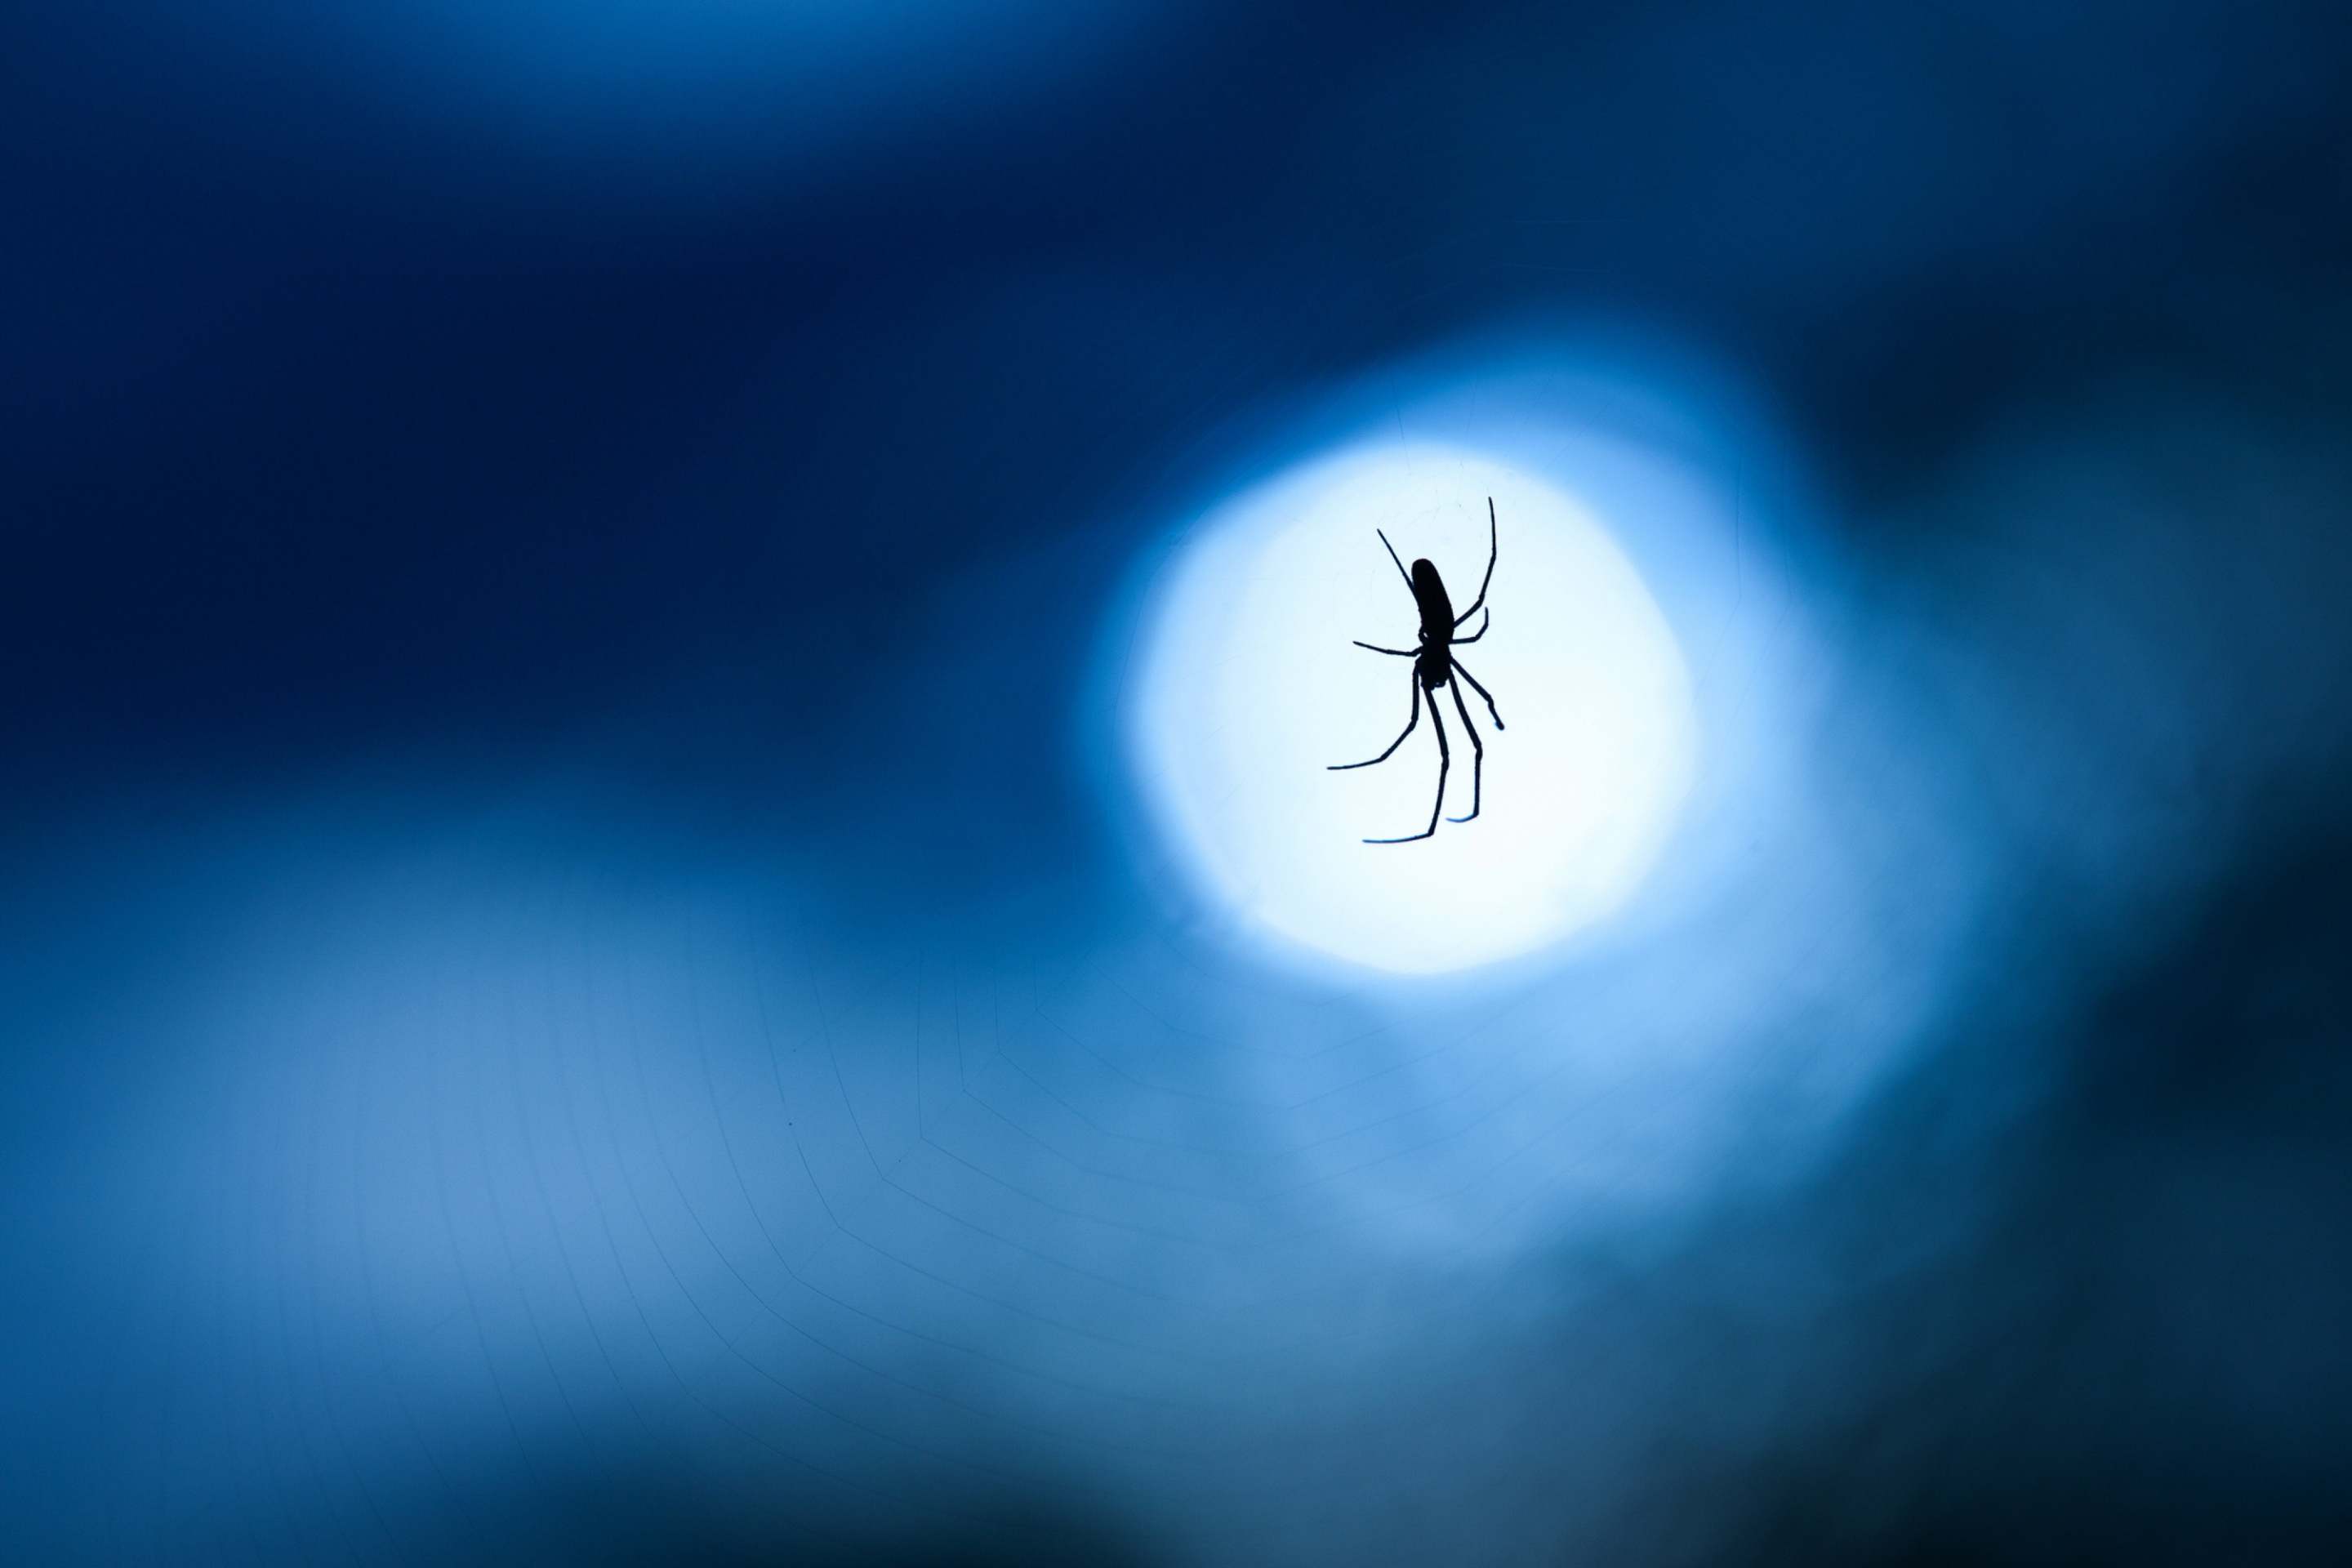 Обои Spider In Moonlight 2880x1920